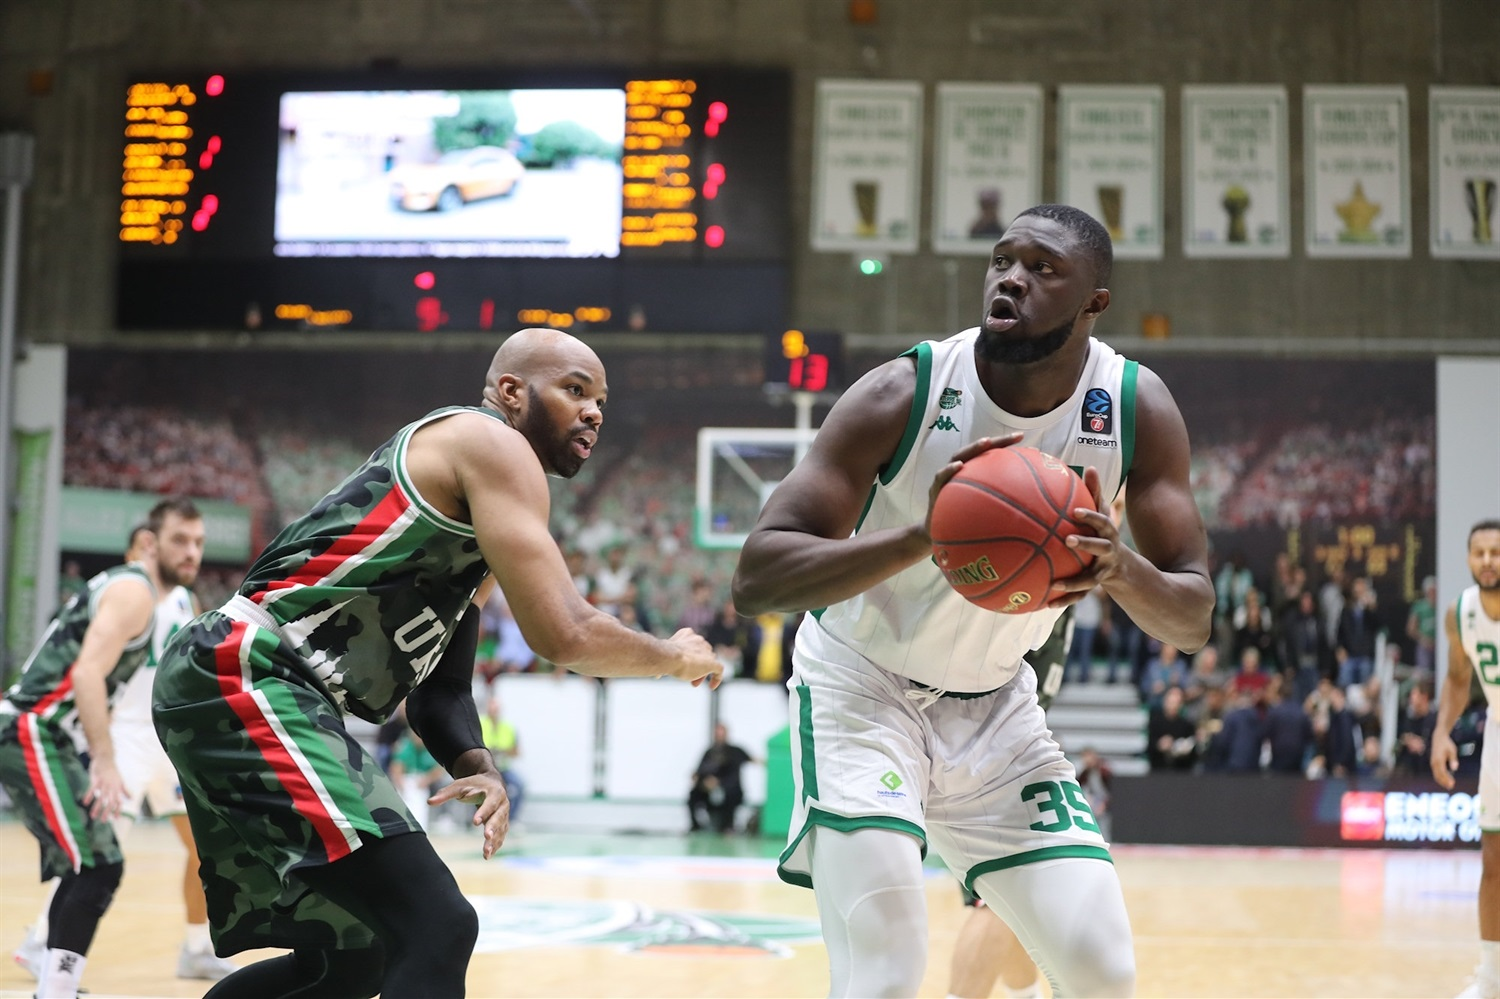 Youssoupha Ndoye - Nanterre 92 (photo Nanterre) - EC19